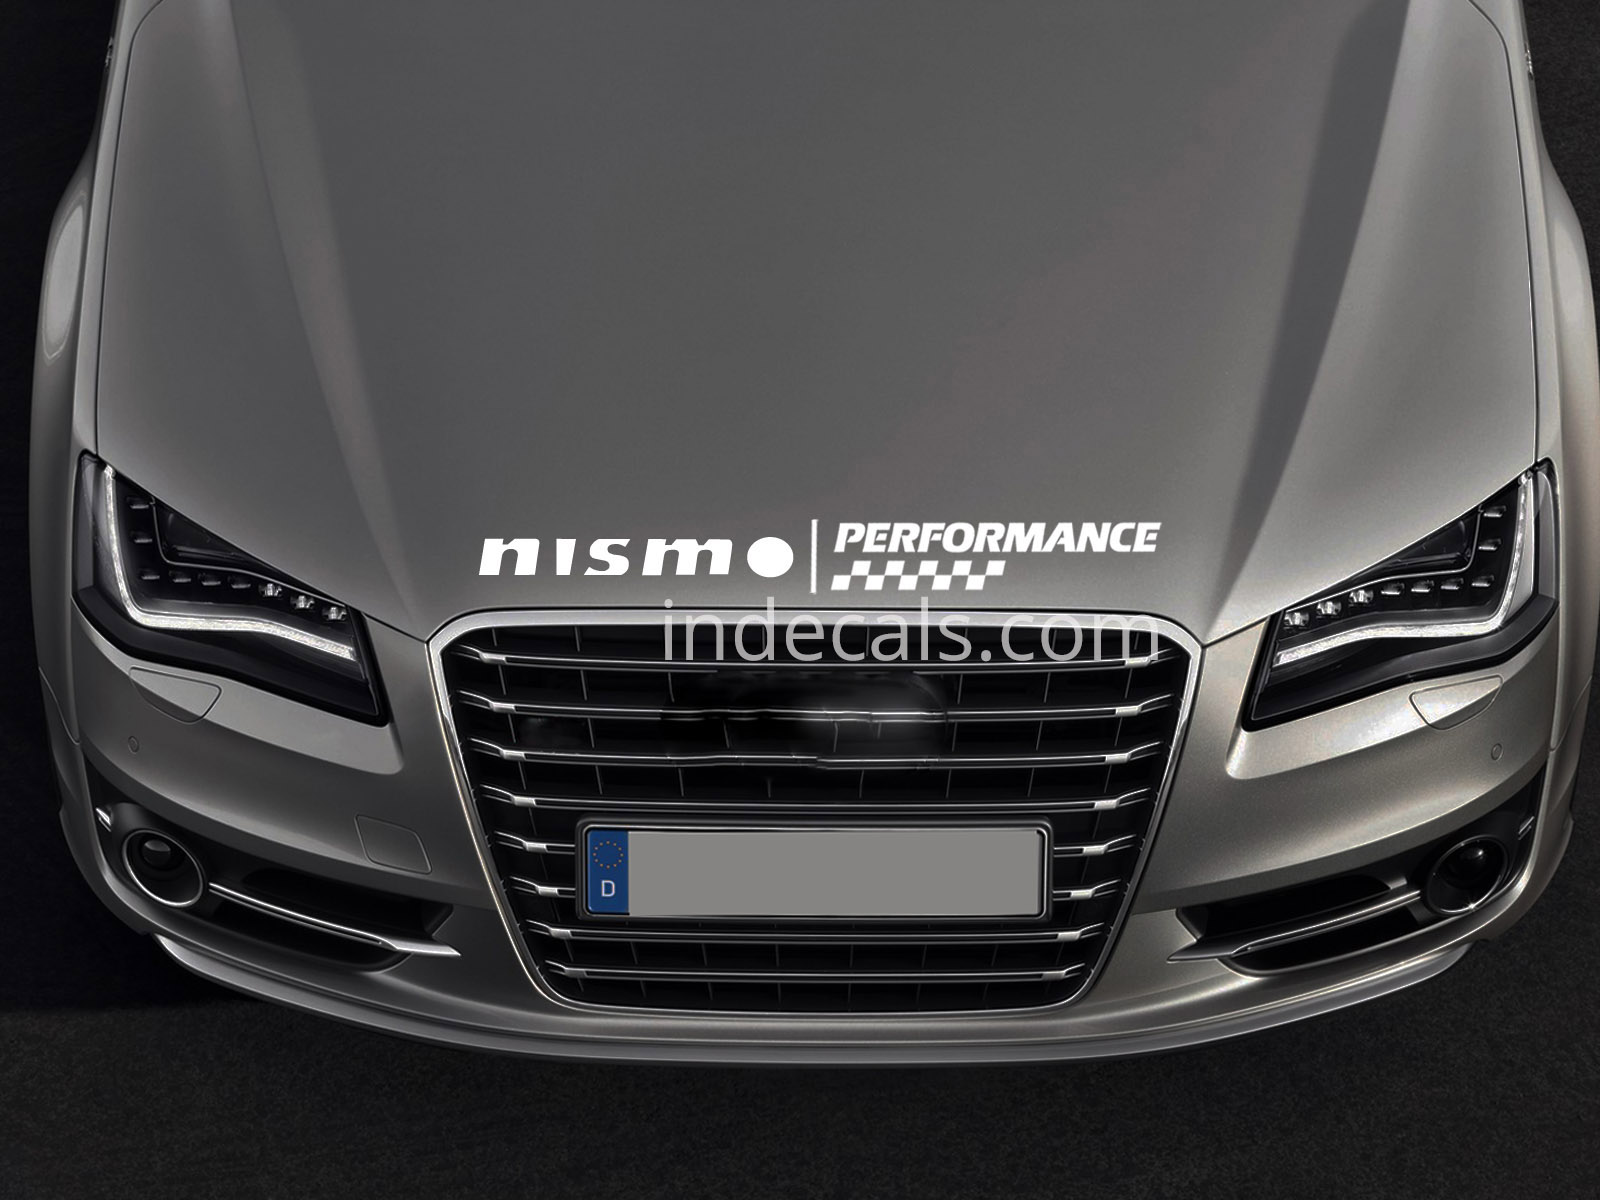 1 x Nismo Peformance Sticker for Bonnet - White